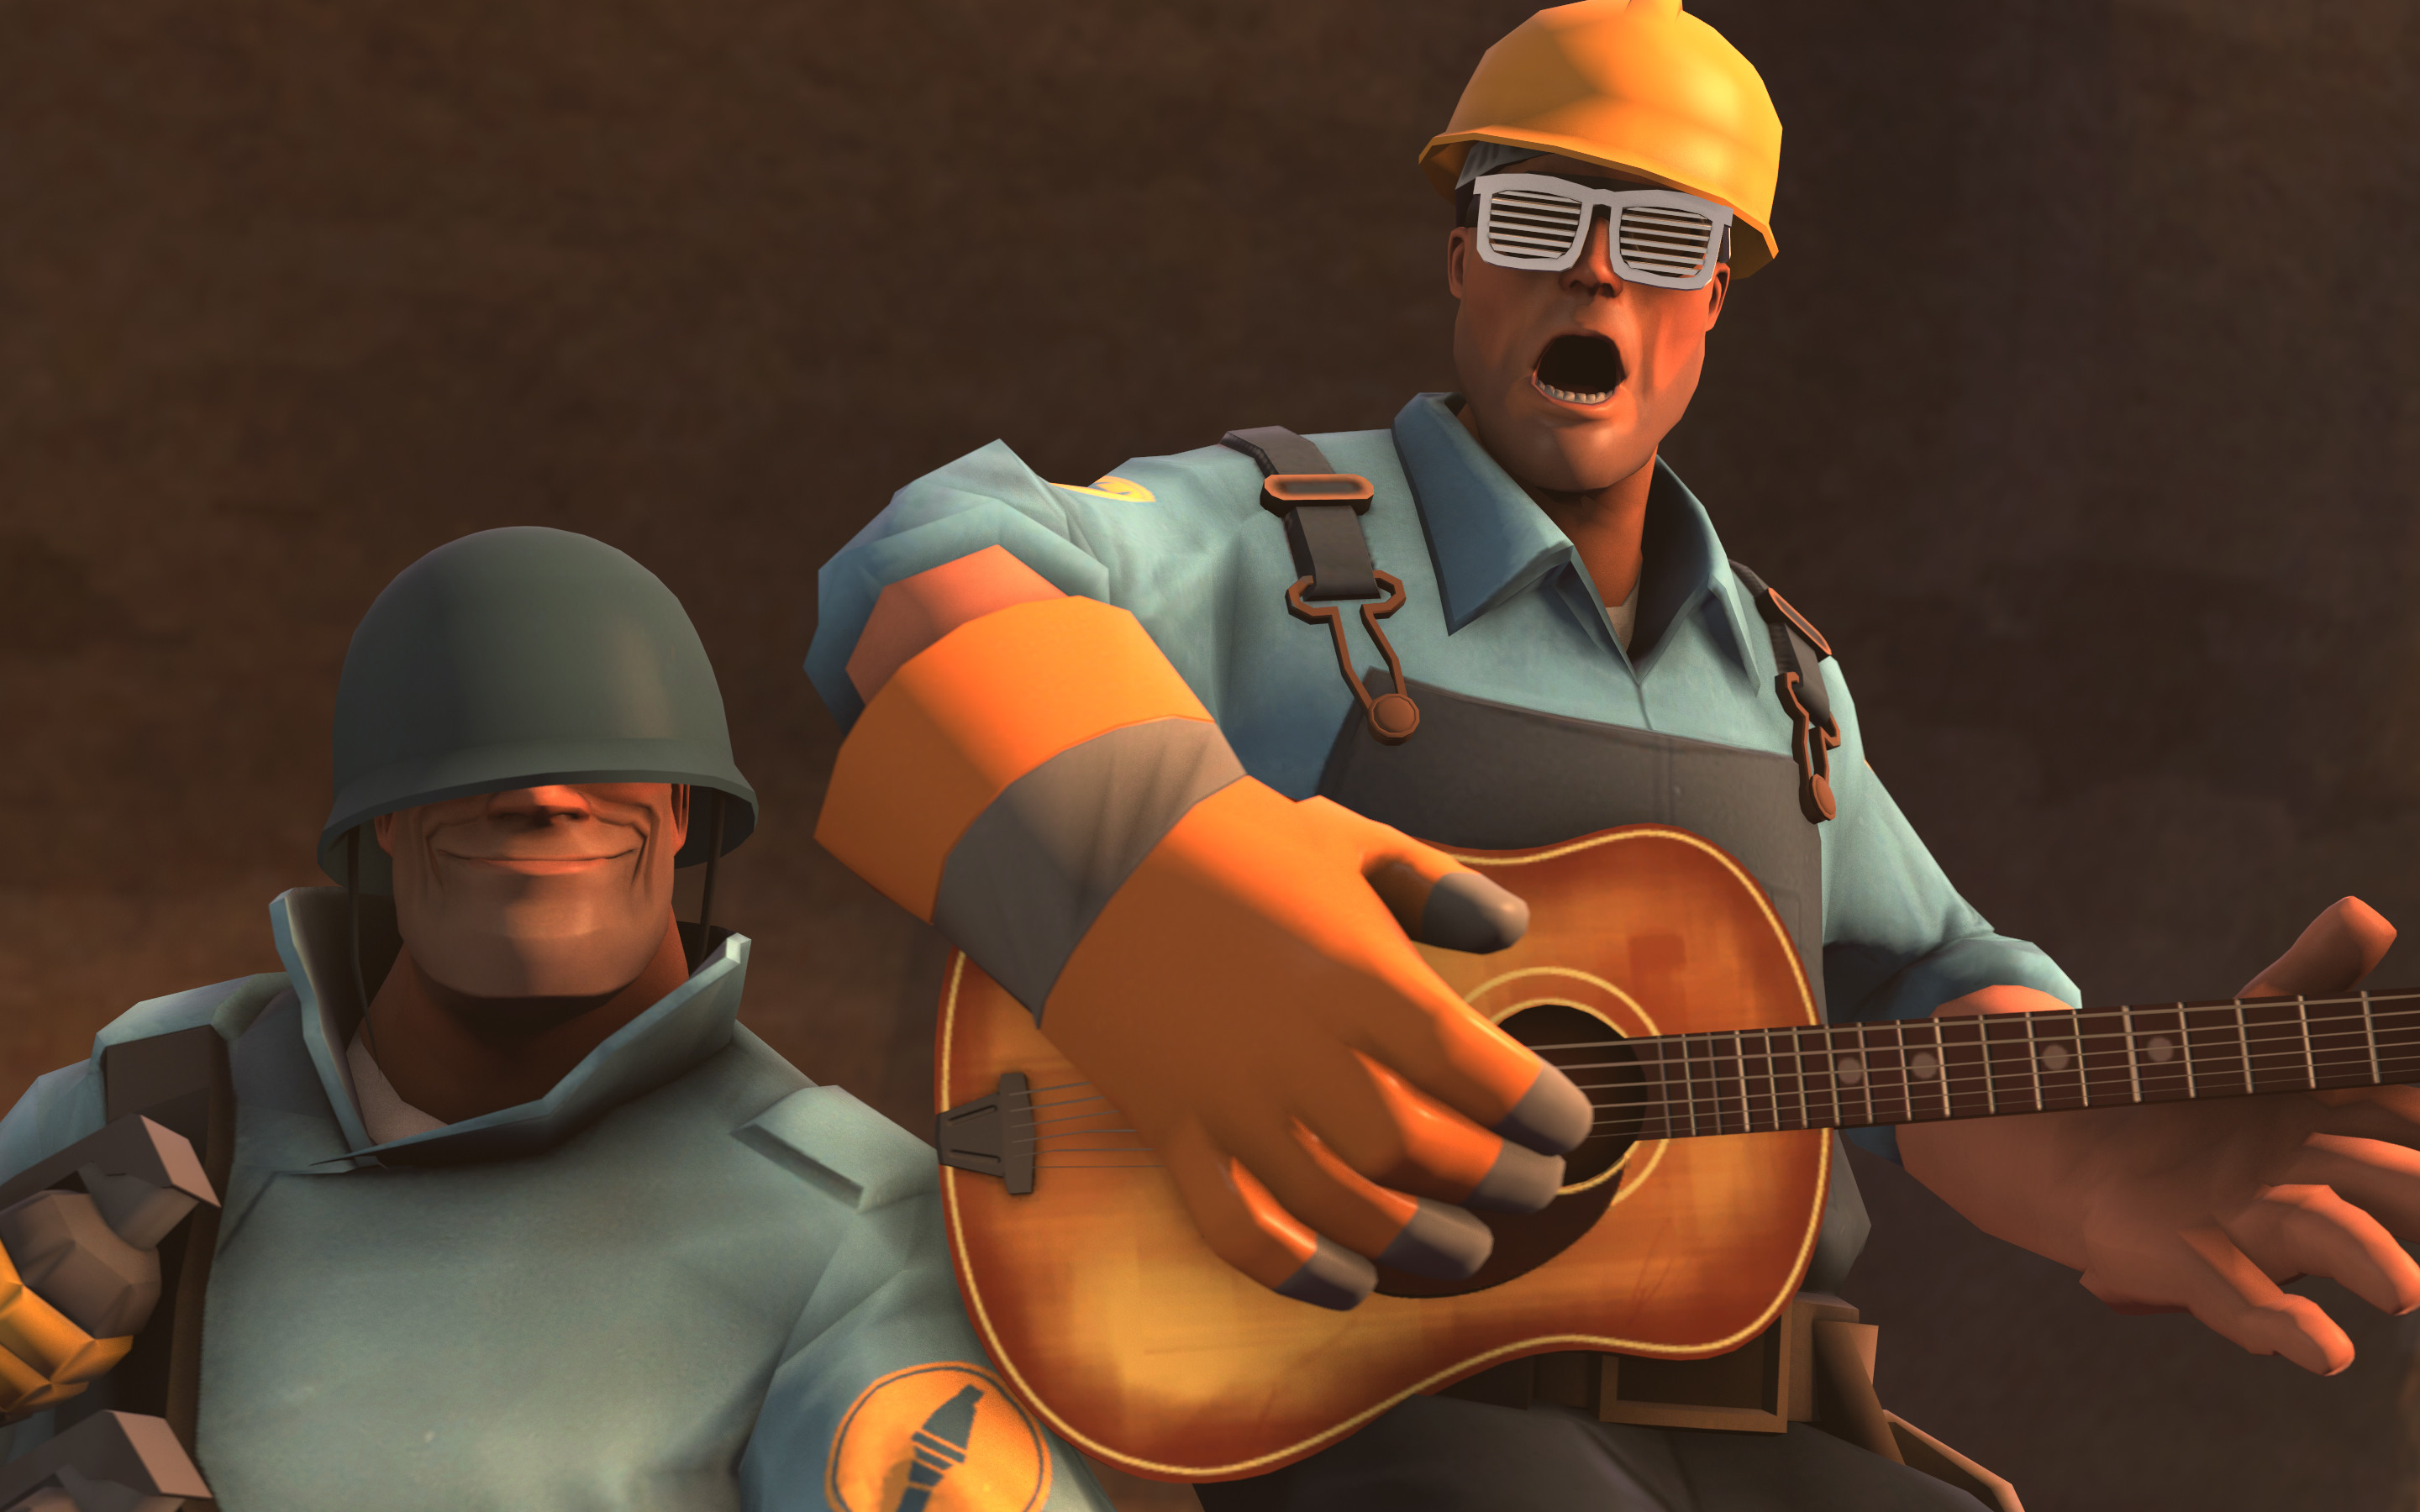 2880x1800 Team Fortress 2(TF2) images team fortress 2 wallpaper soldier and engineer  HD wallpaper and background photos